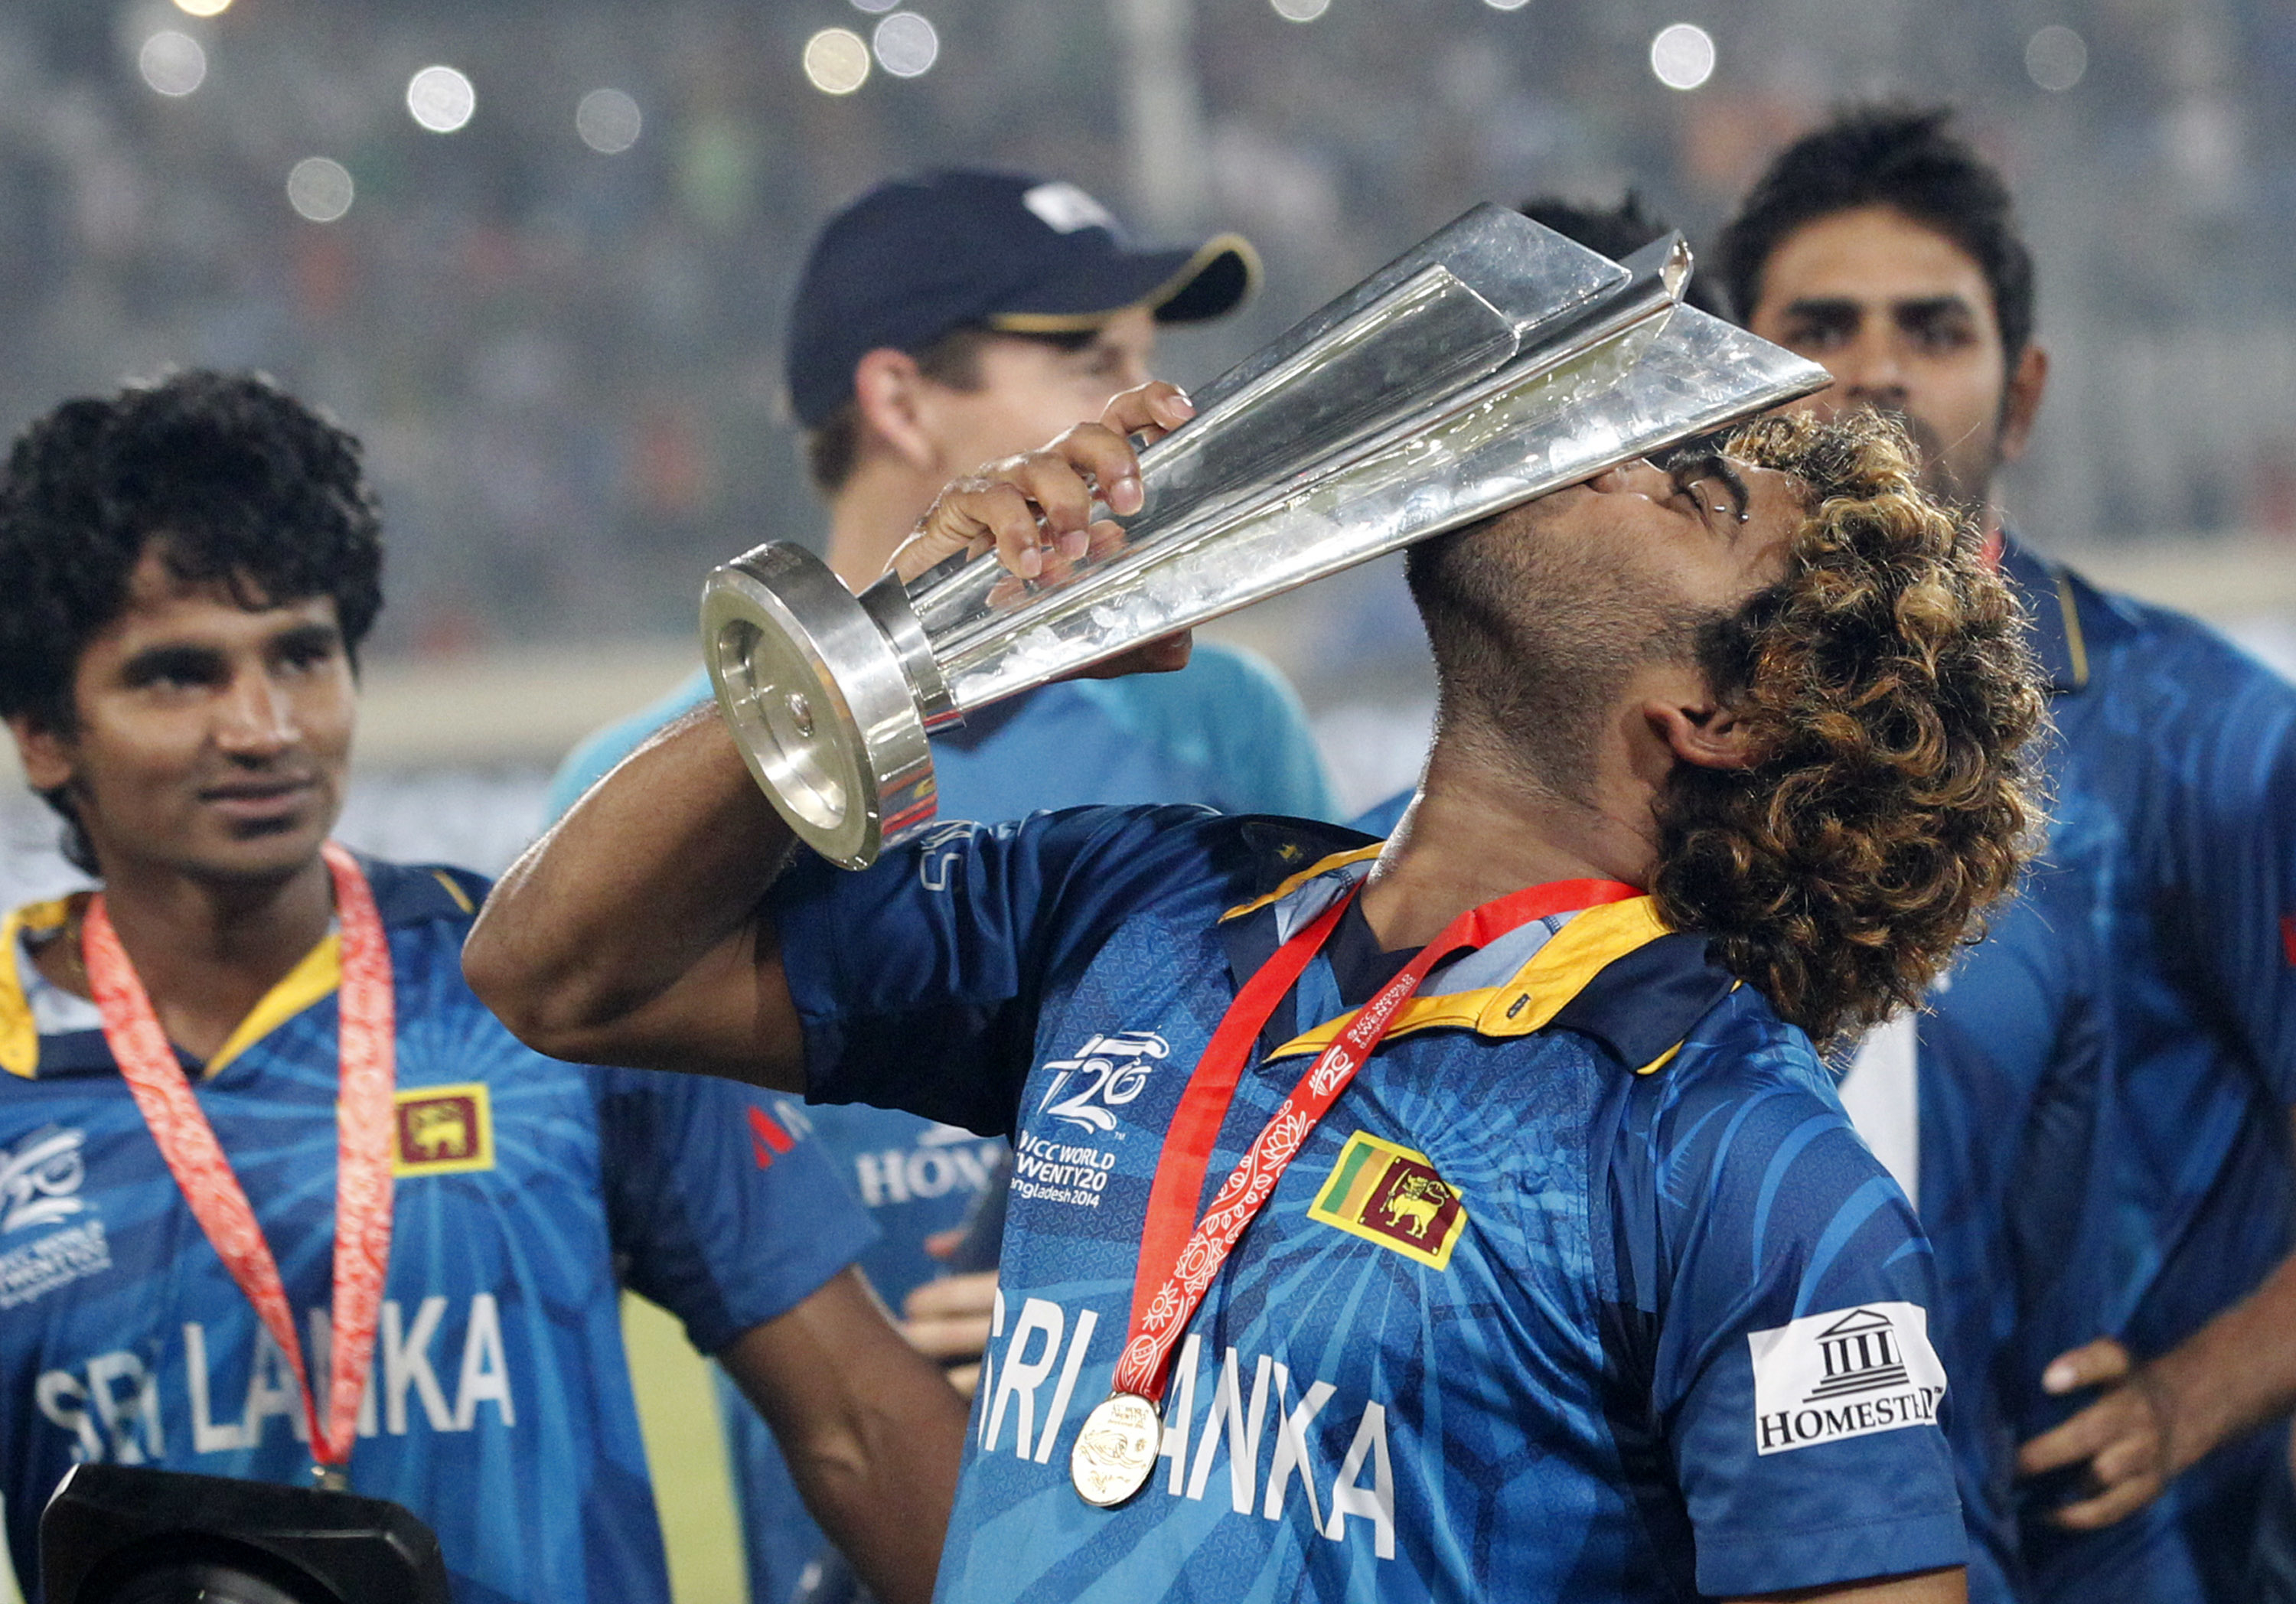 Sri Lanka won the first-ever T20 World Cup On 6th April 2014